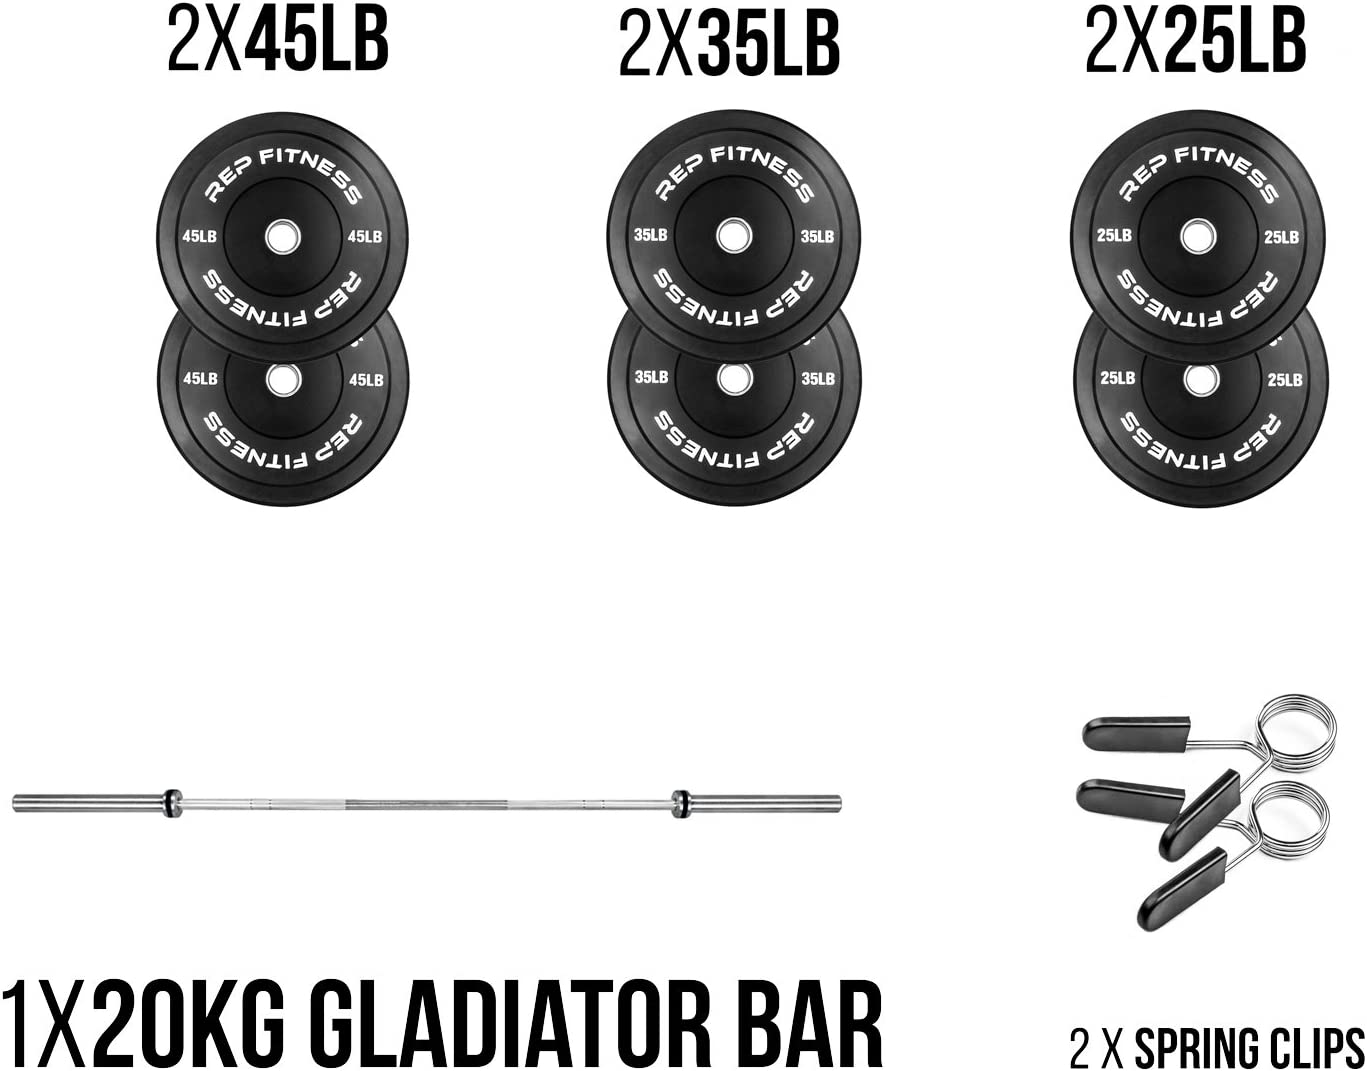 Rep Bar and Black Bumper Plate Package, Weight Set for Strength and Conditioning, Cross-Training and Olympic Weightlifting